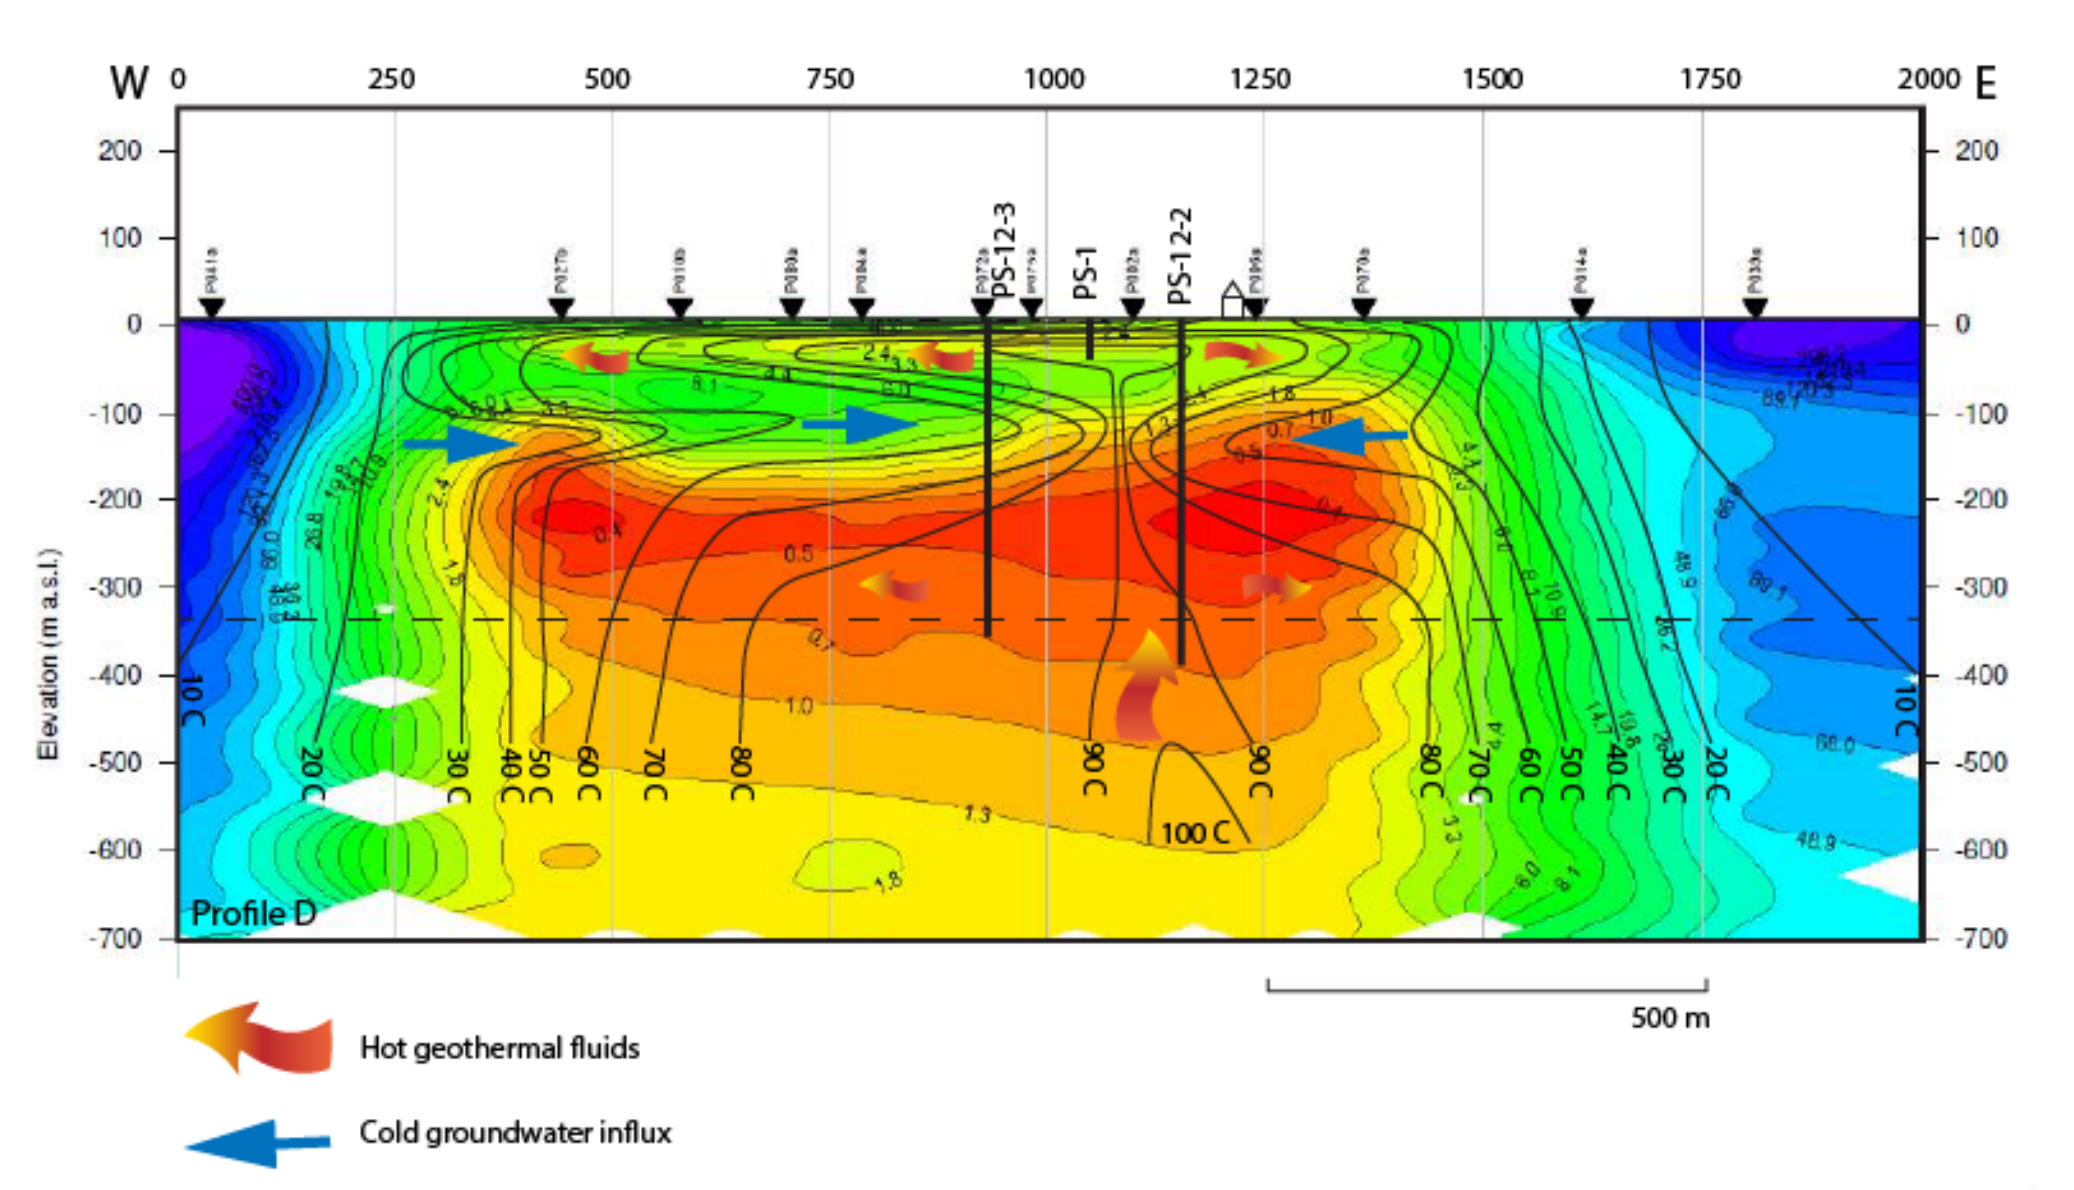 Subsurface model of the Pilgrim Hot Springs geothermal system. Note that the geothermal reservoir is only at 300m depth in unconsolidated sediment, though the hot water is believed to emanate from a fault at greater depth, near the 100C isotherm, but the exact location is still unknown. Miller et al., (2013).